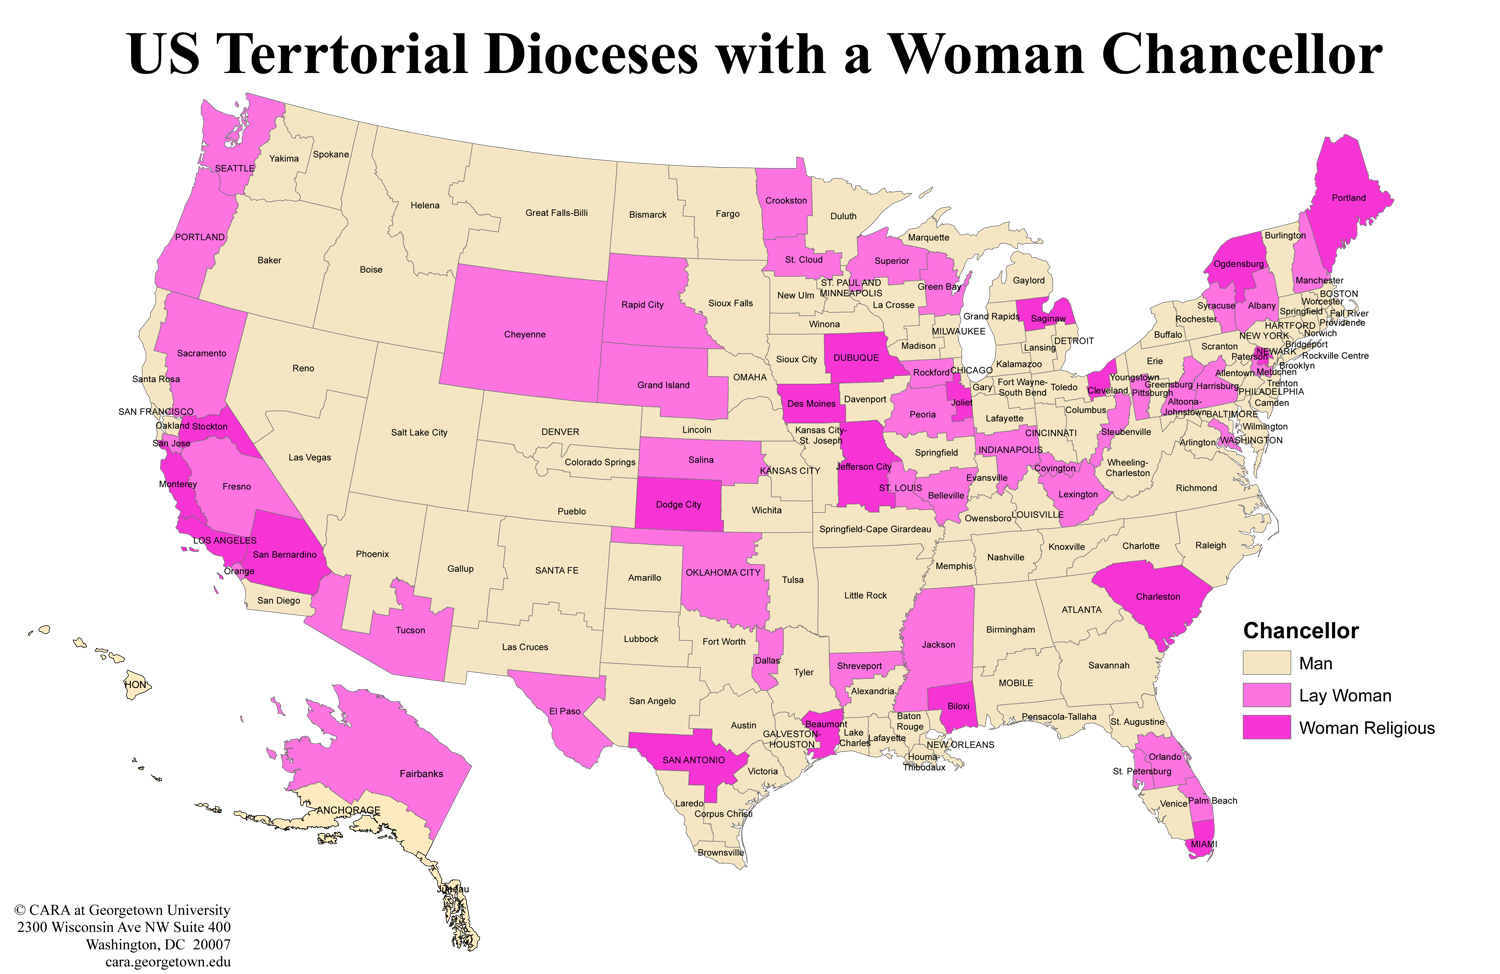 FEMALE chancellors already exist in many US dioceses  Crisis